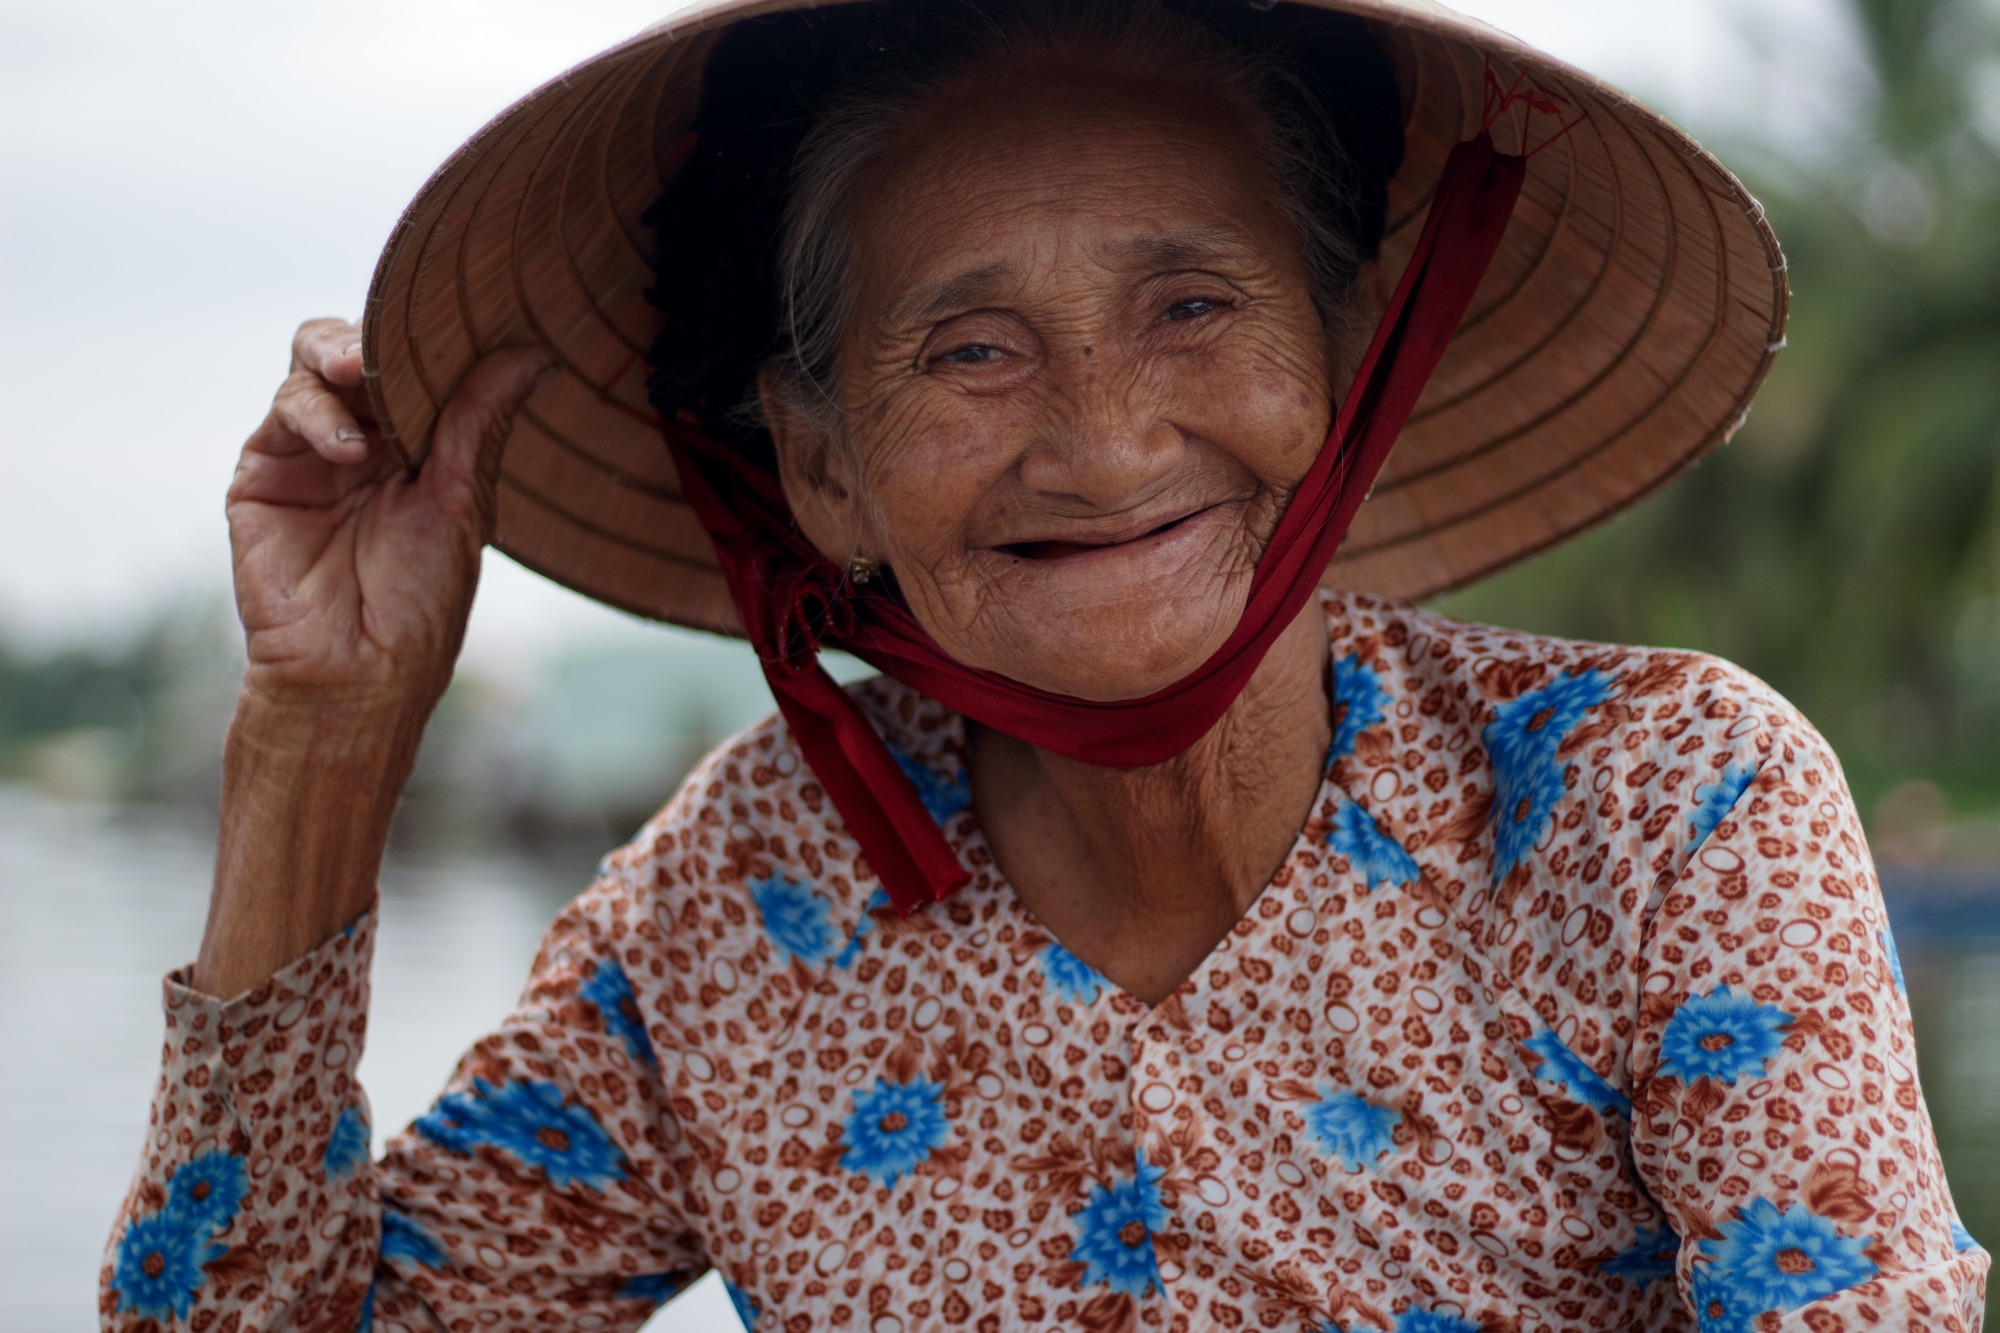 An elderly boat woman in Hoi An smiles as she is pictured during a boat ride.